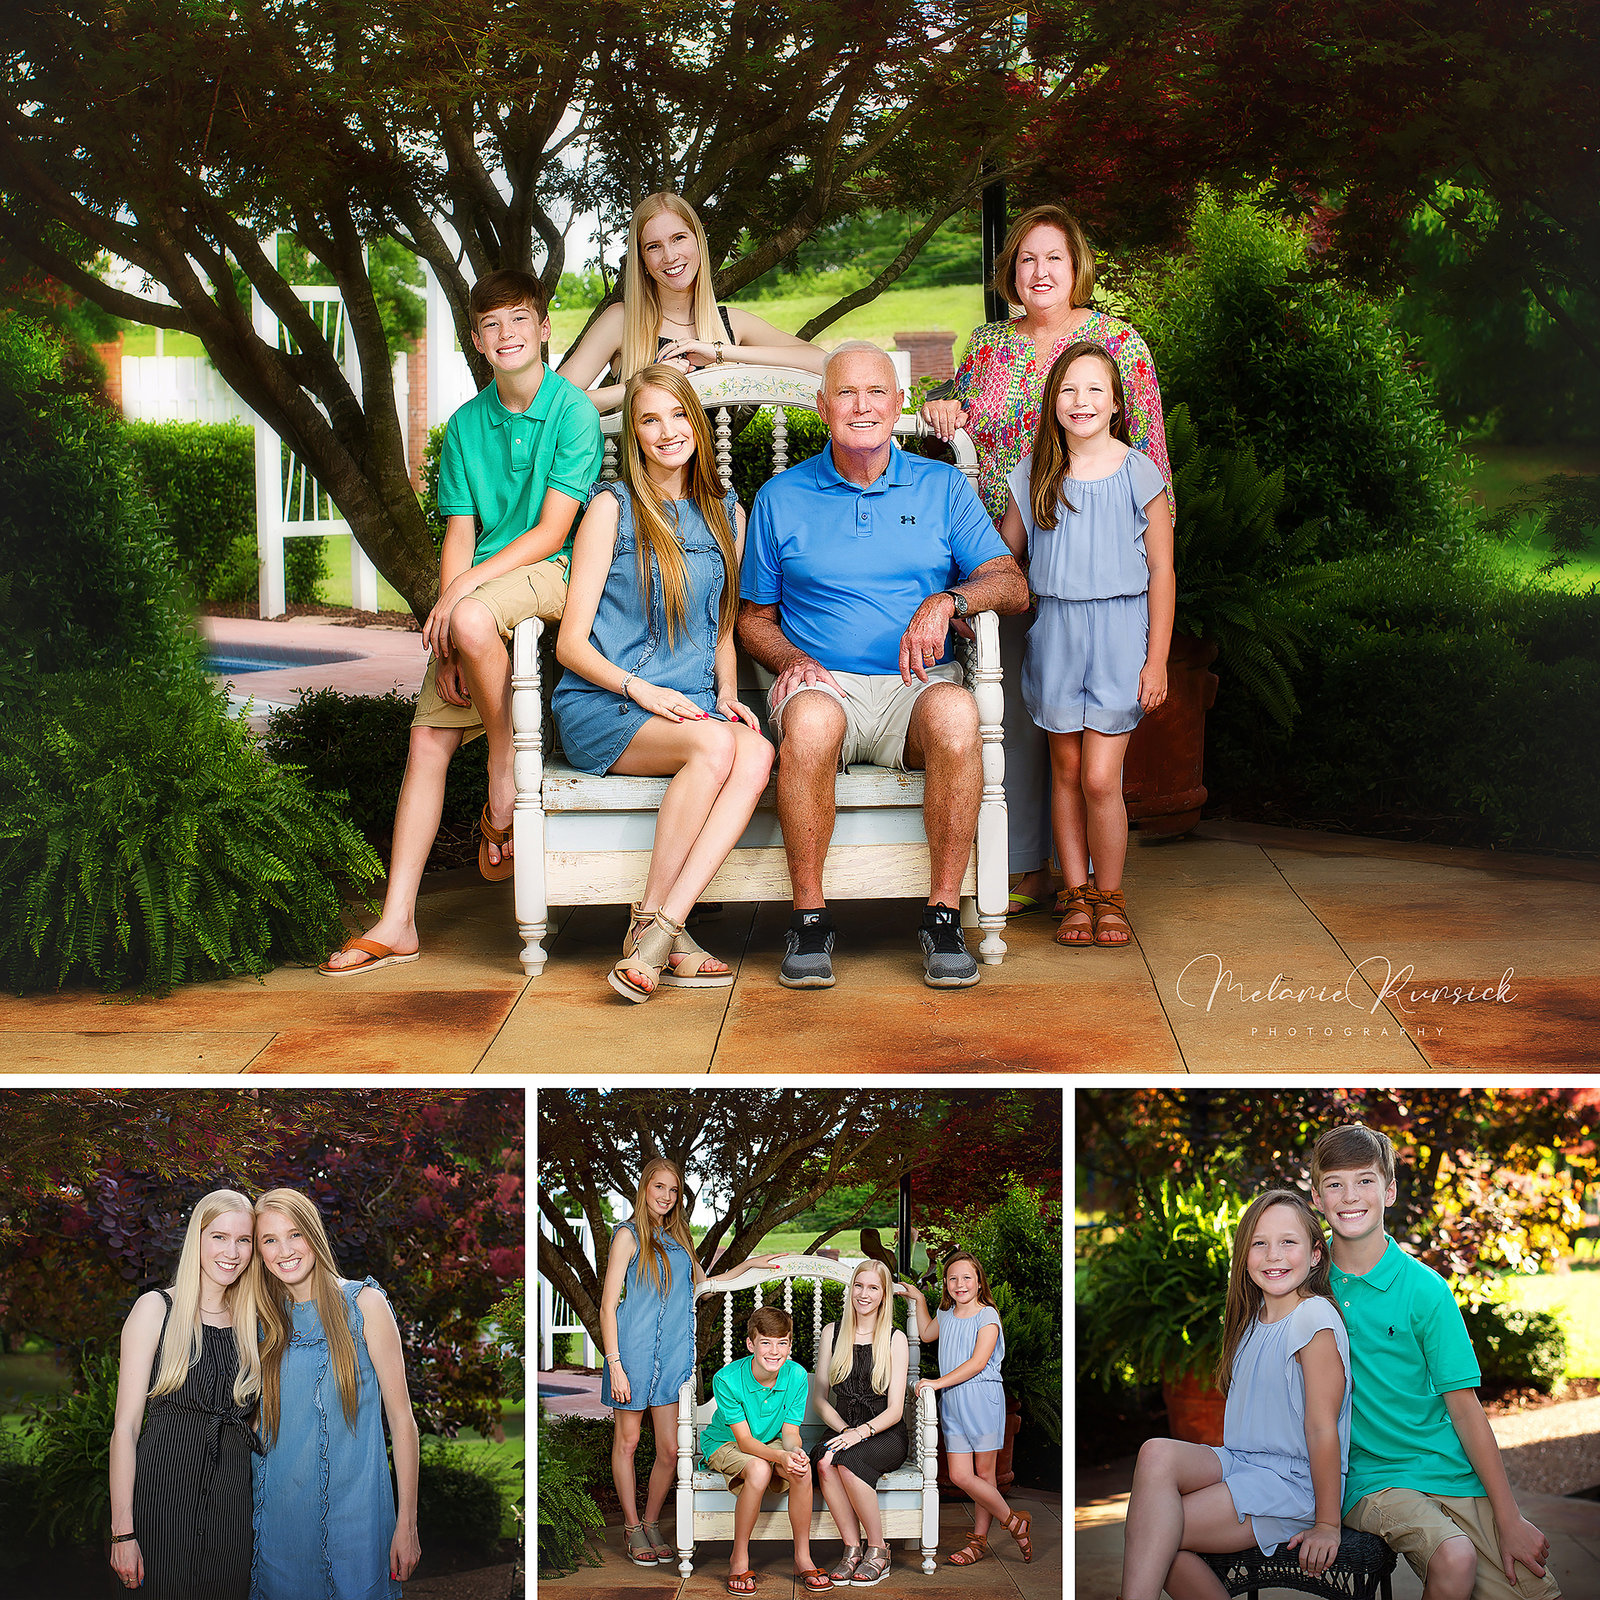 Newport Ar family photographer Melanie Runsick